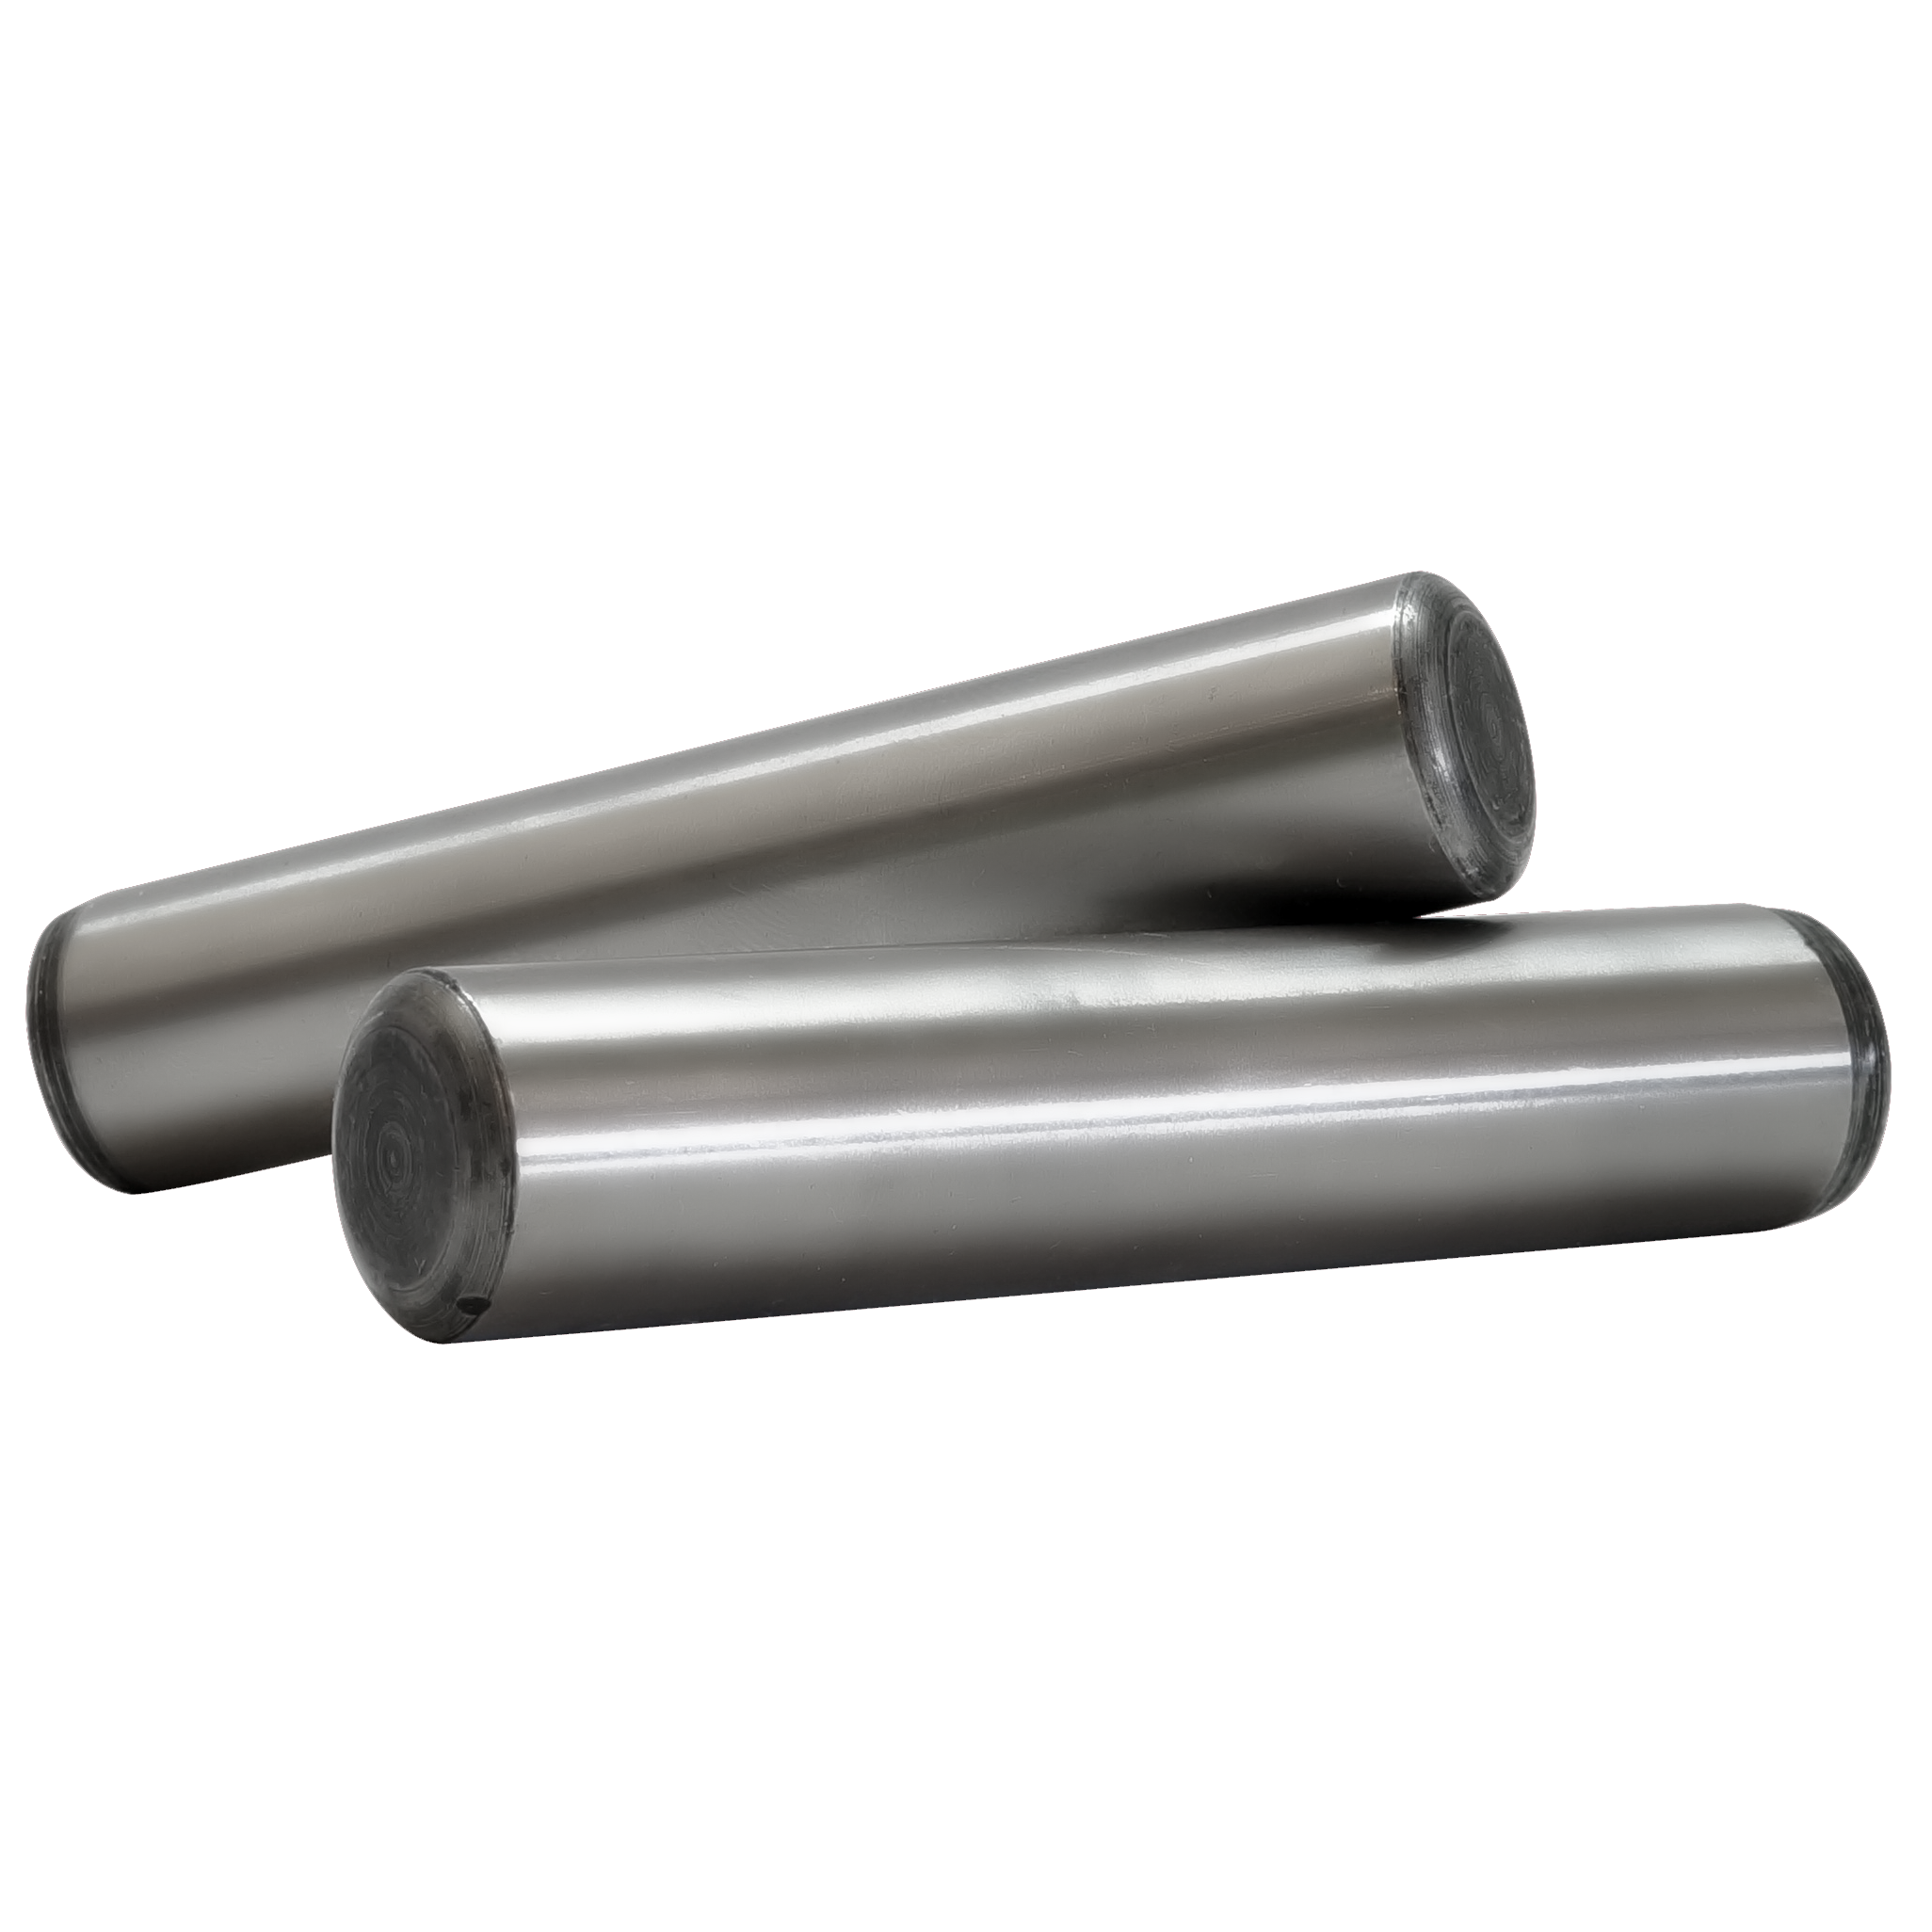 "1/8x1 1/2 ASME B18.8.2 Alloy Steel Dowel Pin Hardened Ground 0.0002"" Over Sized  (Unbrako)"